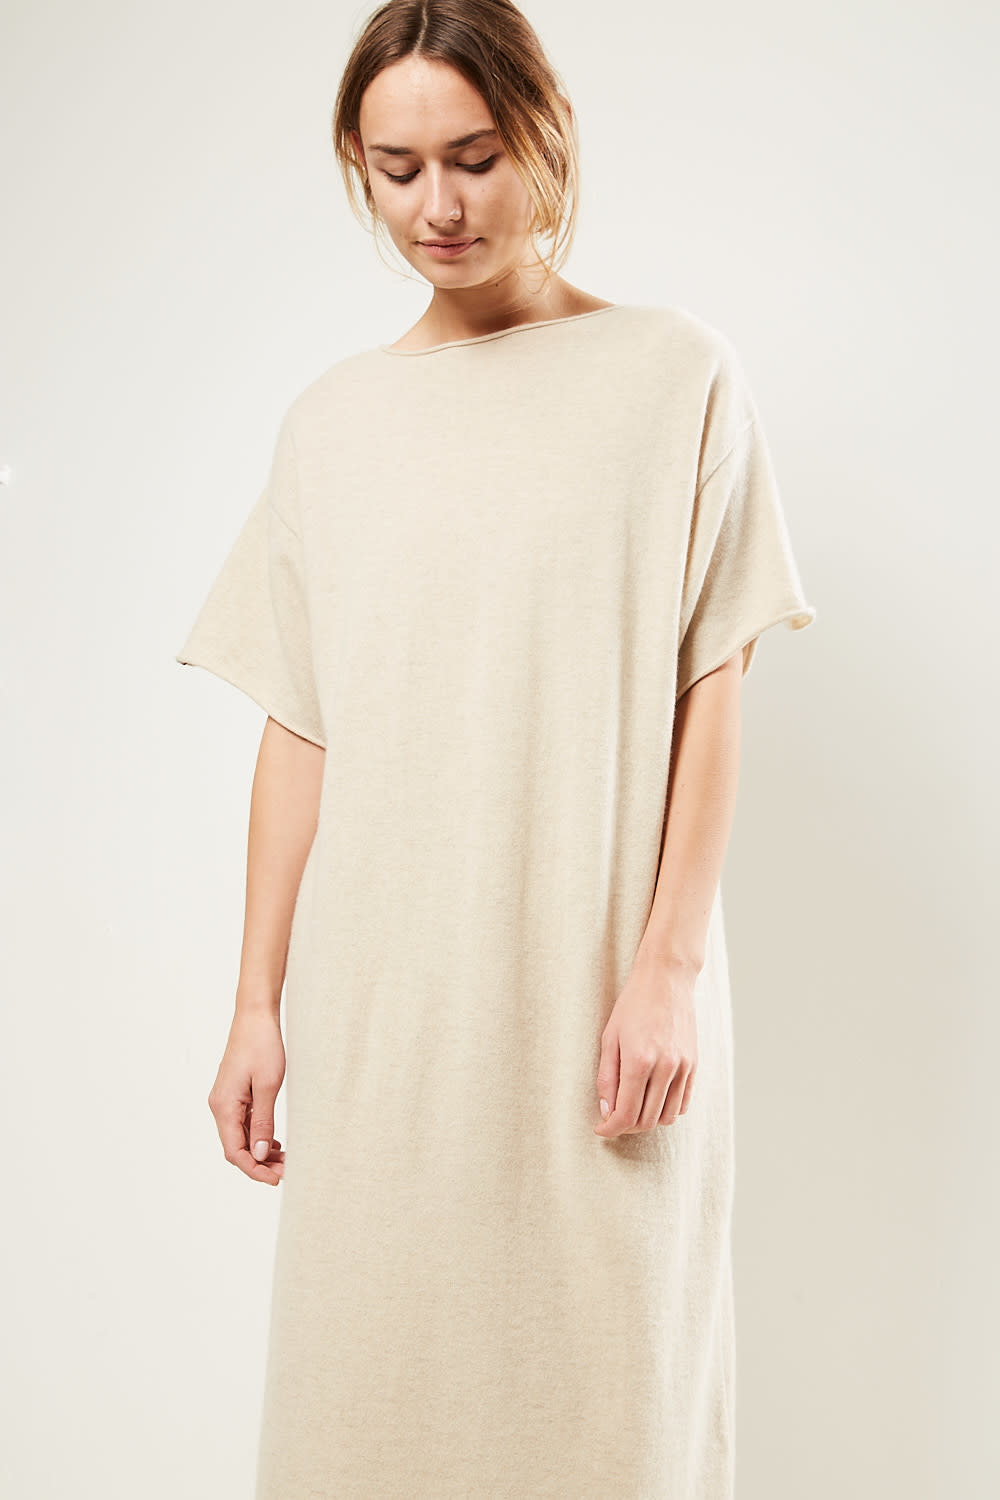 extreme cashmere no44 teelong latte